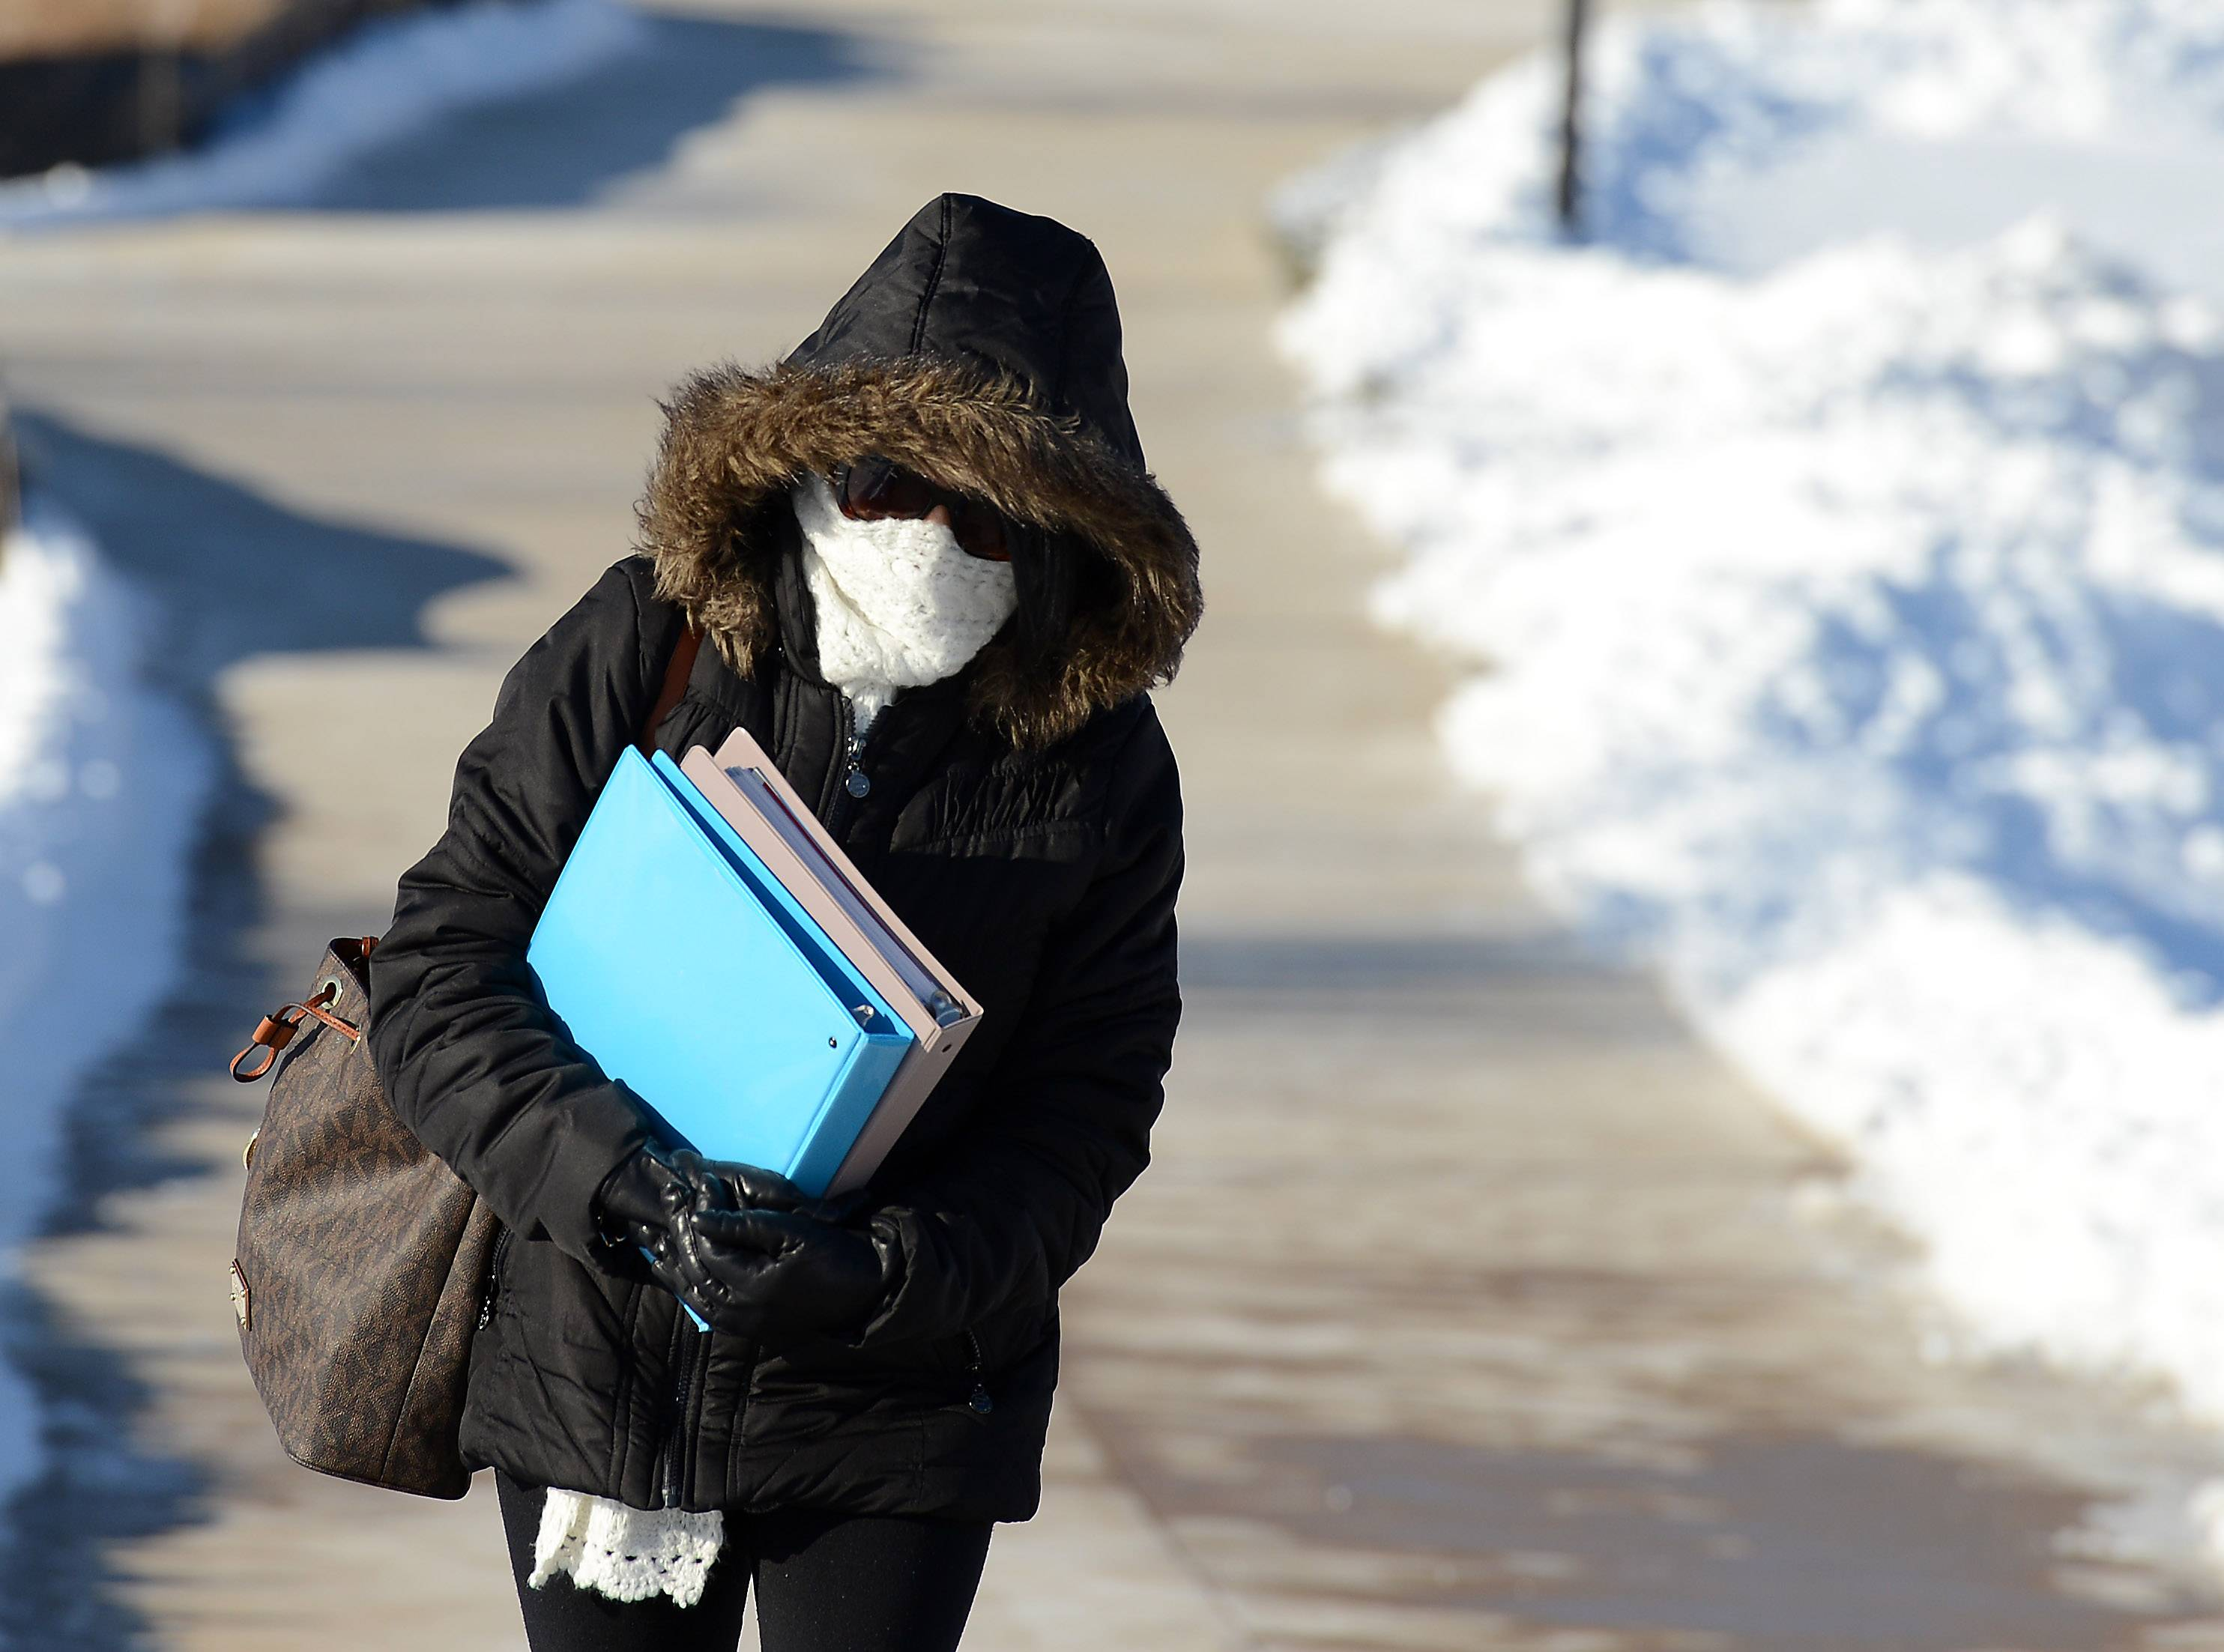 With a windchill temperature at -10 degrees, Maria Becker of Bartlett keeps as little of her skin showing as possible as she walks to her car at Elgin Community College Thursday.